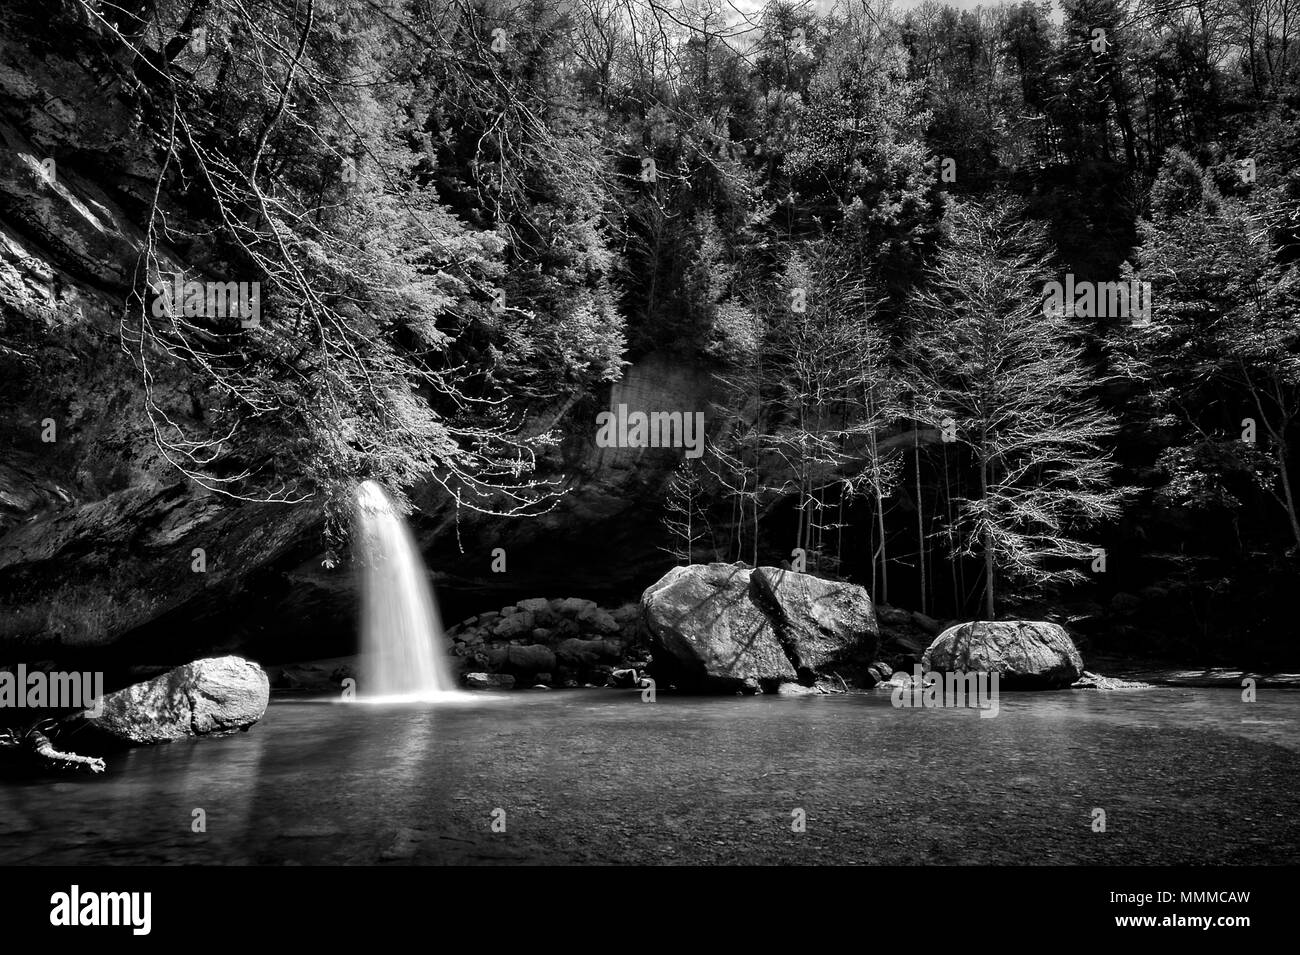 Lower Falls at Old Man's Cave in Hocking Hills Ohio in black and white. This is a very popular tourist attraction in Ohio. - Stock Image